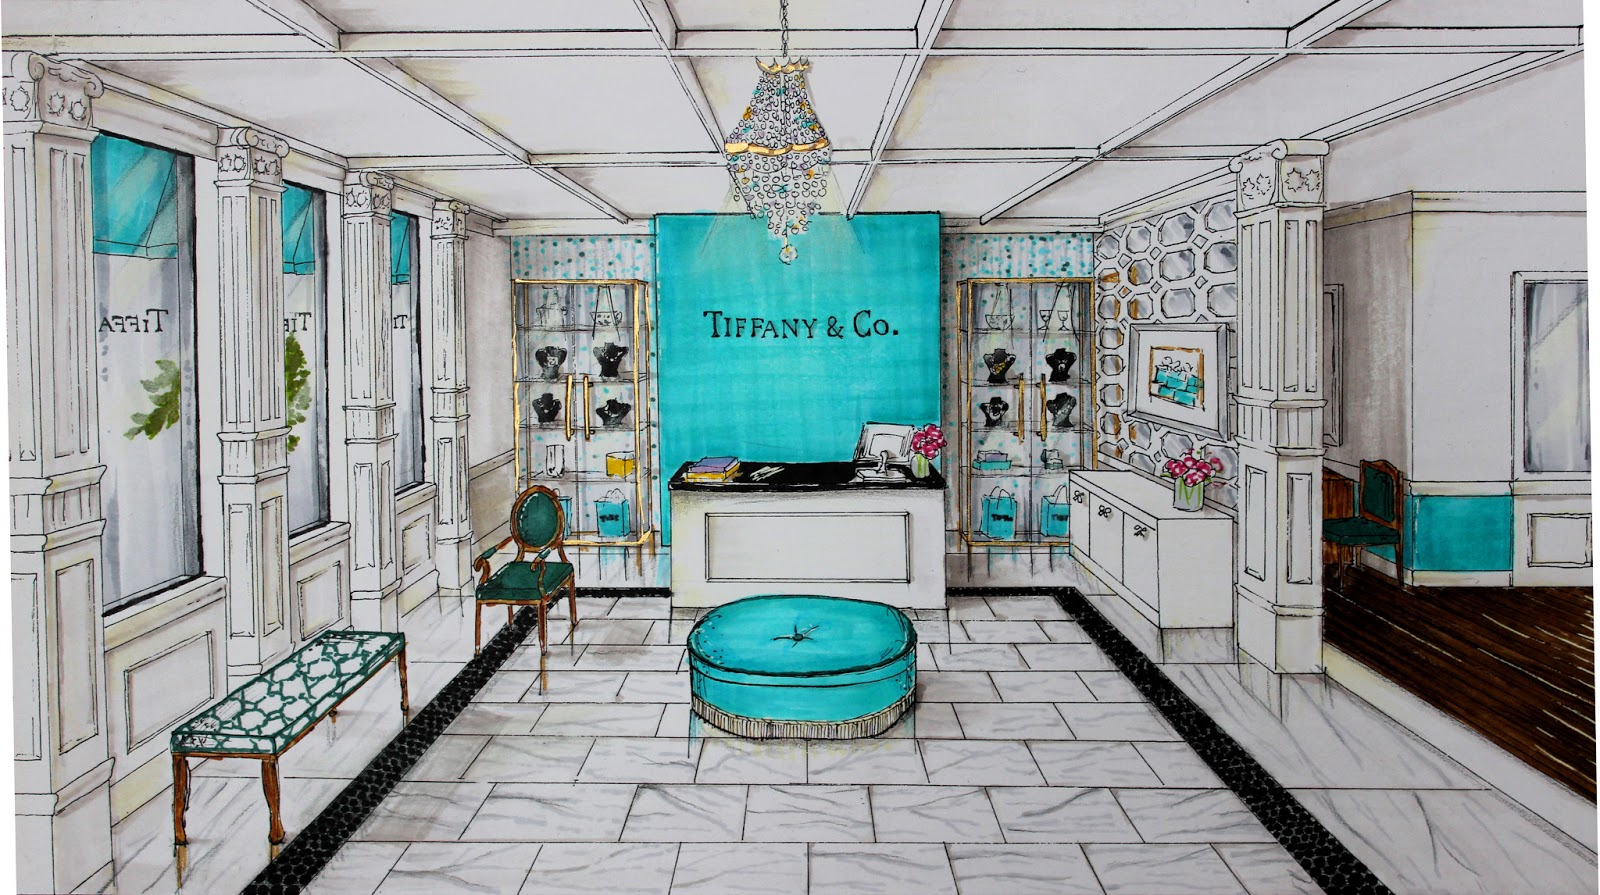 Tiffany co reception completed project home design for Tiffany d living room